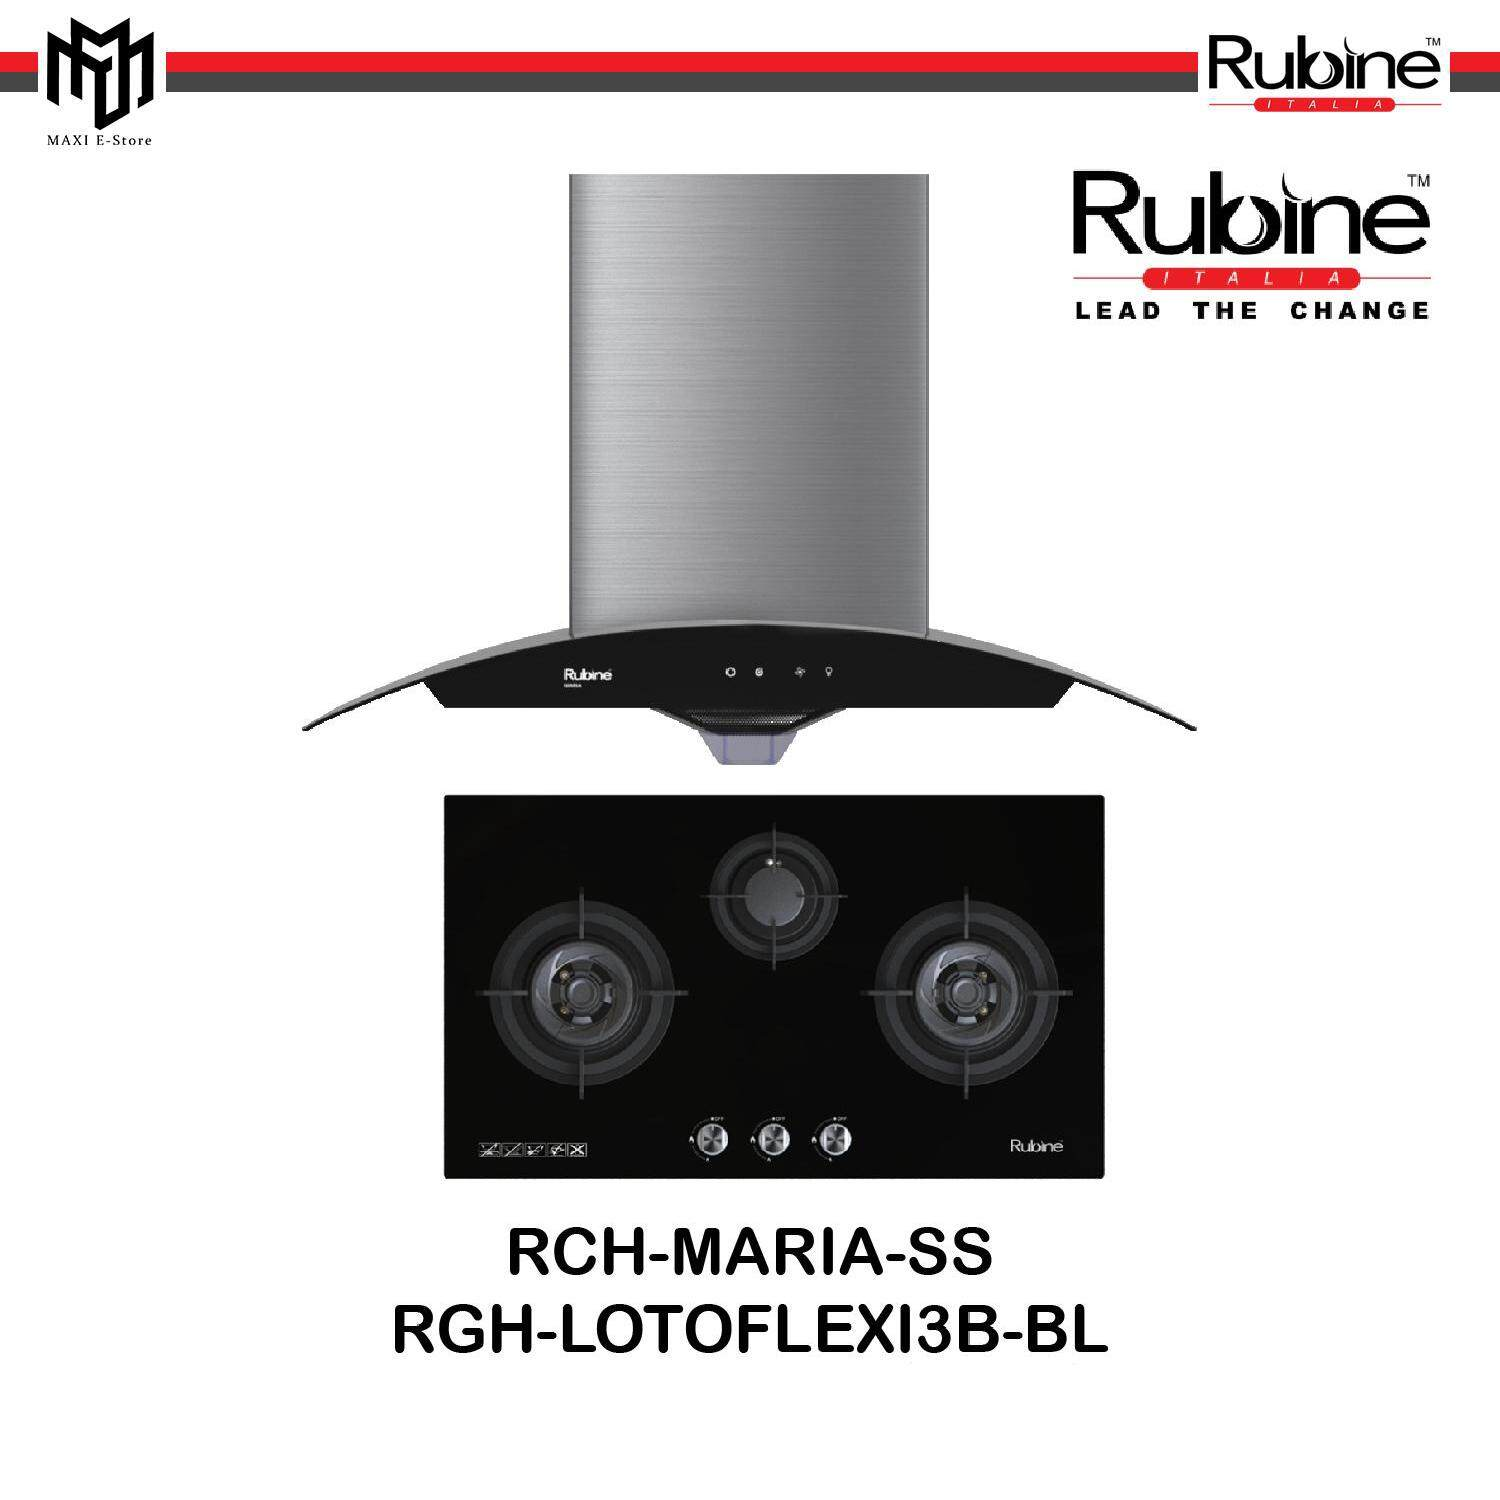 Rubine Estratto Series Designer Chimney Cooker Hood 1200m3 Hr H²meltz Built In